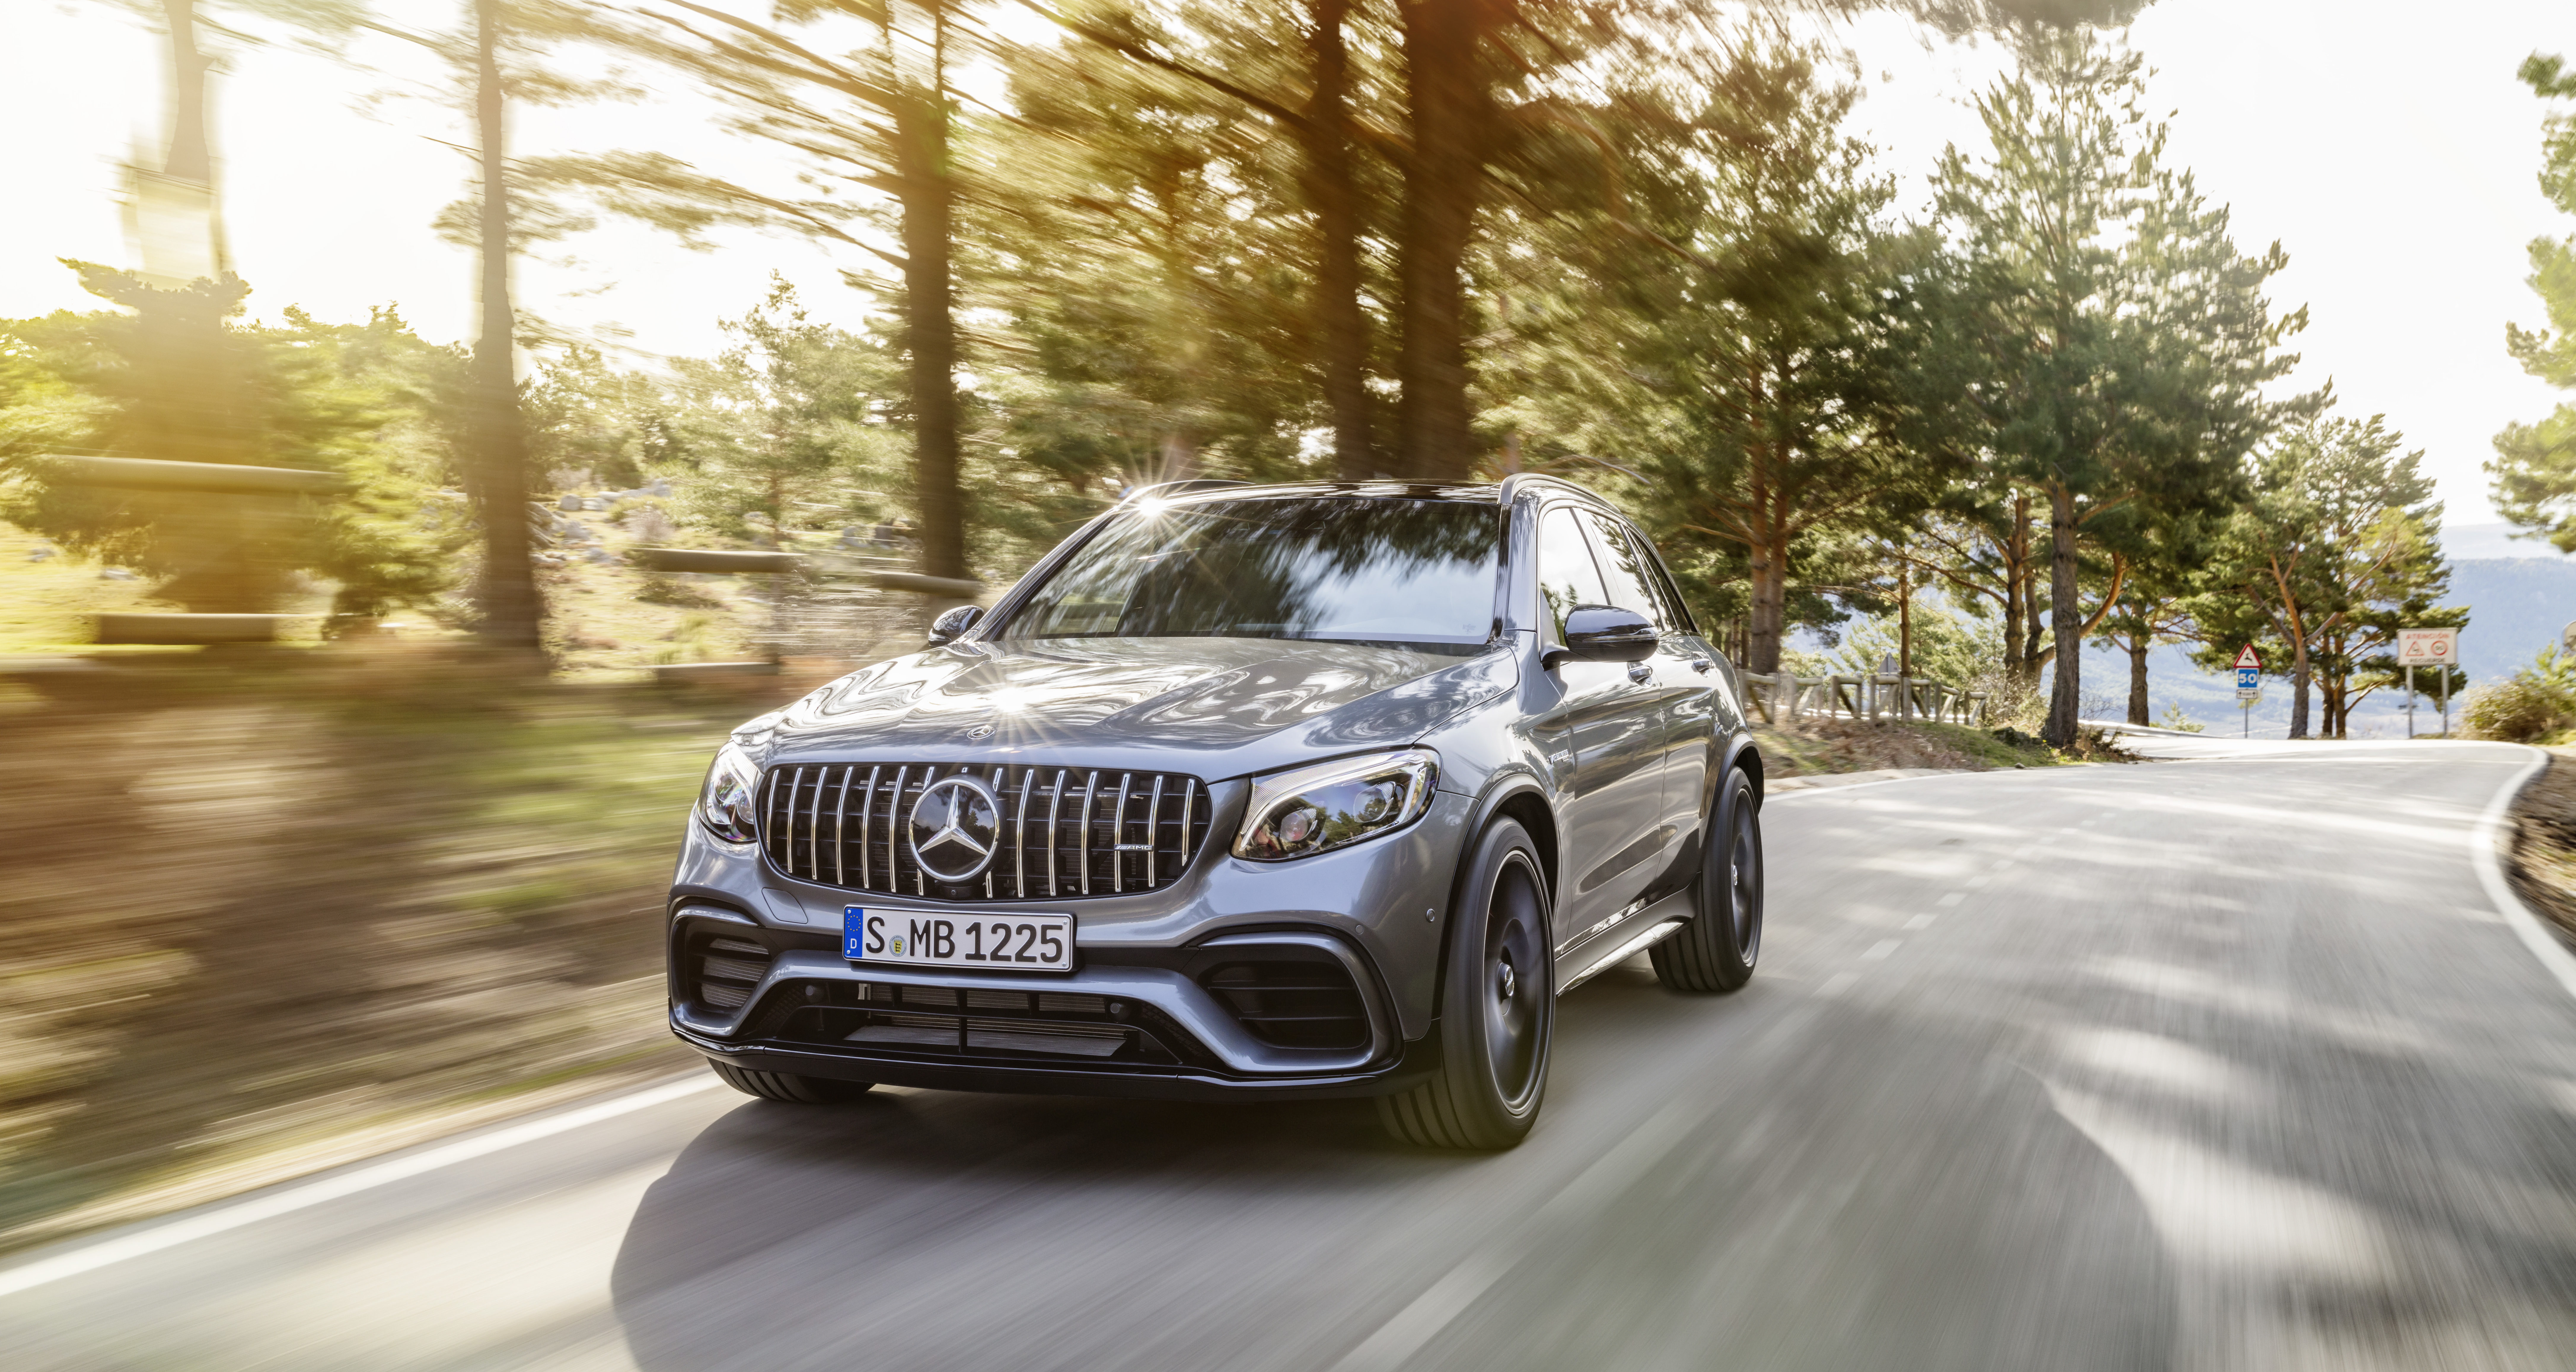 Mercedes-AMG GLC63 S: SUV with a supercar heart